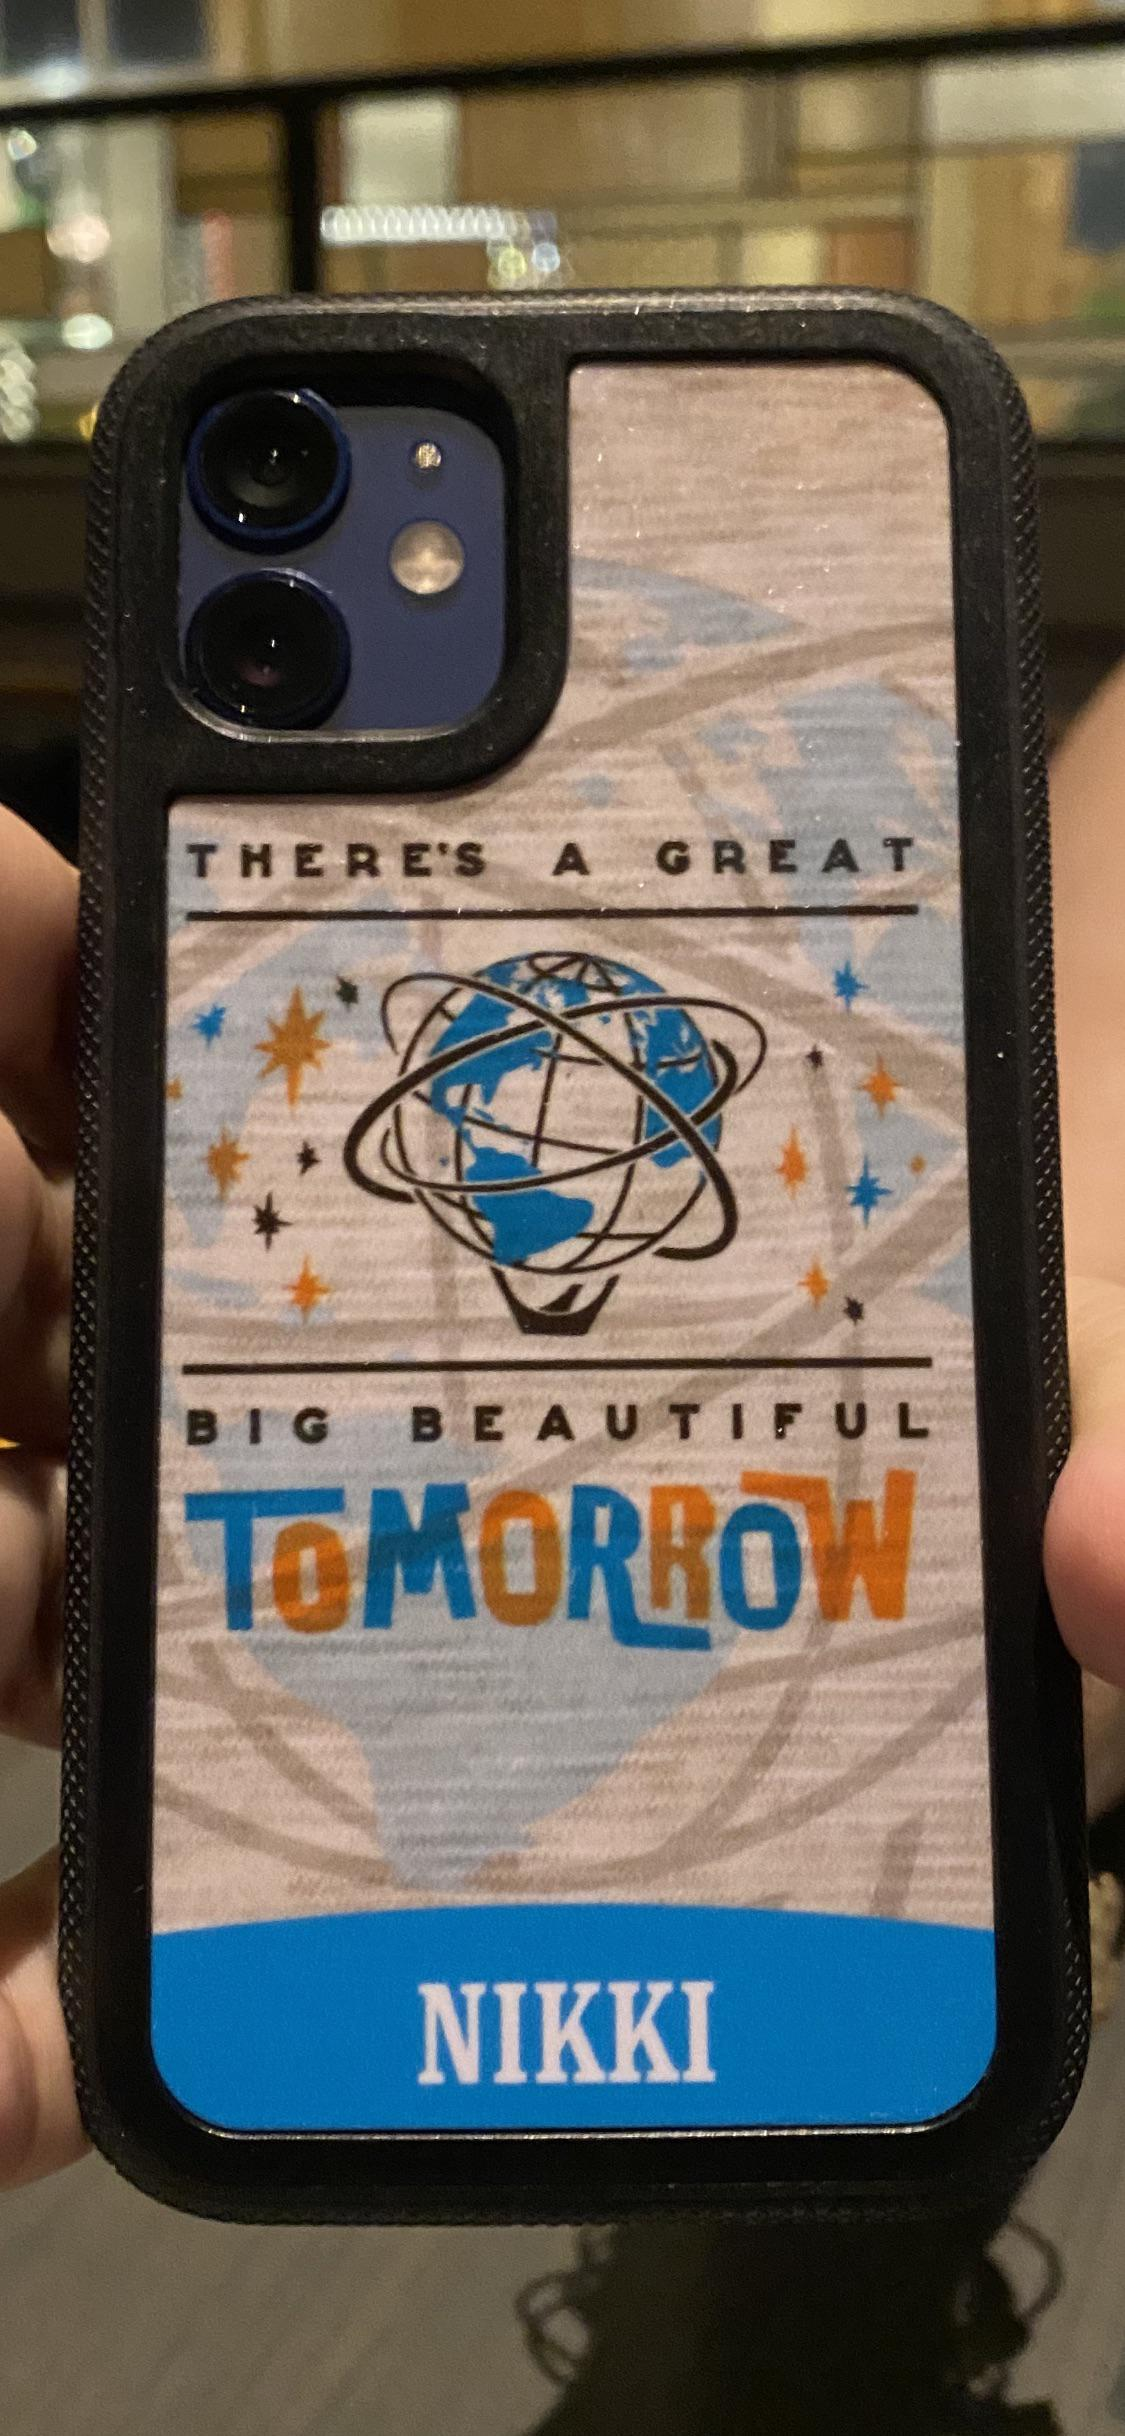 "[Image] Inspired by my favorite ride at Disney World, I got this phone case to remind me (mostly when I'm down) that there is in fact always ""a great big beautiful tomorrow""! Never forget that folks!"